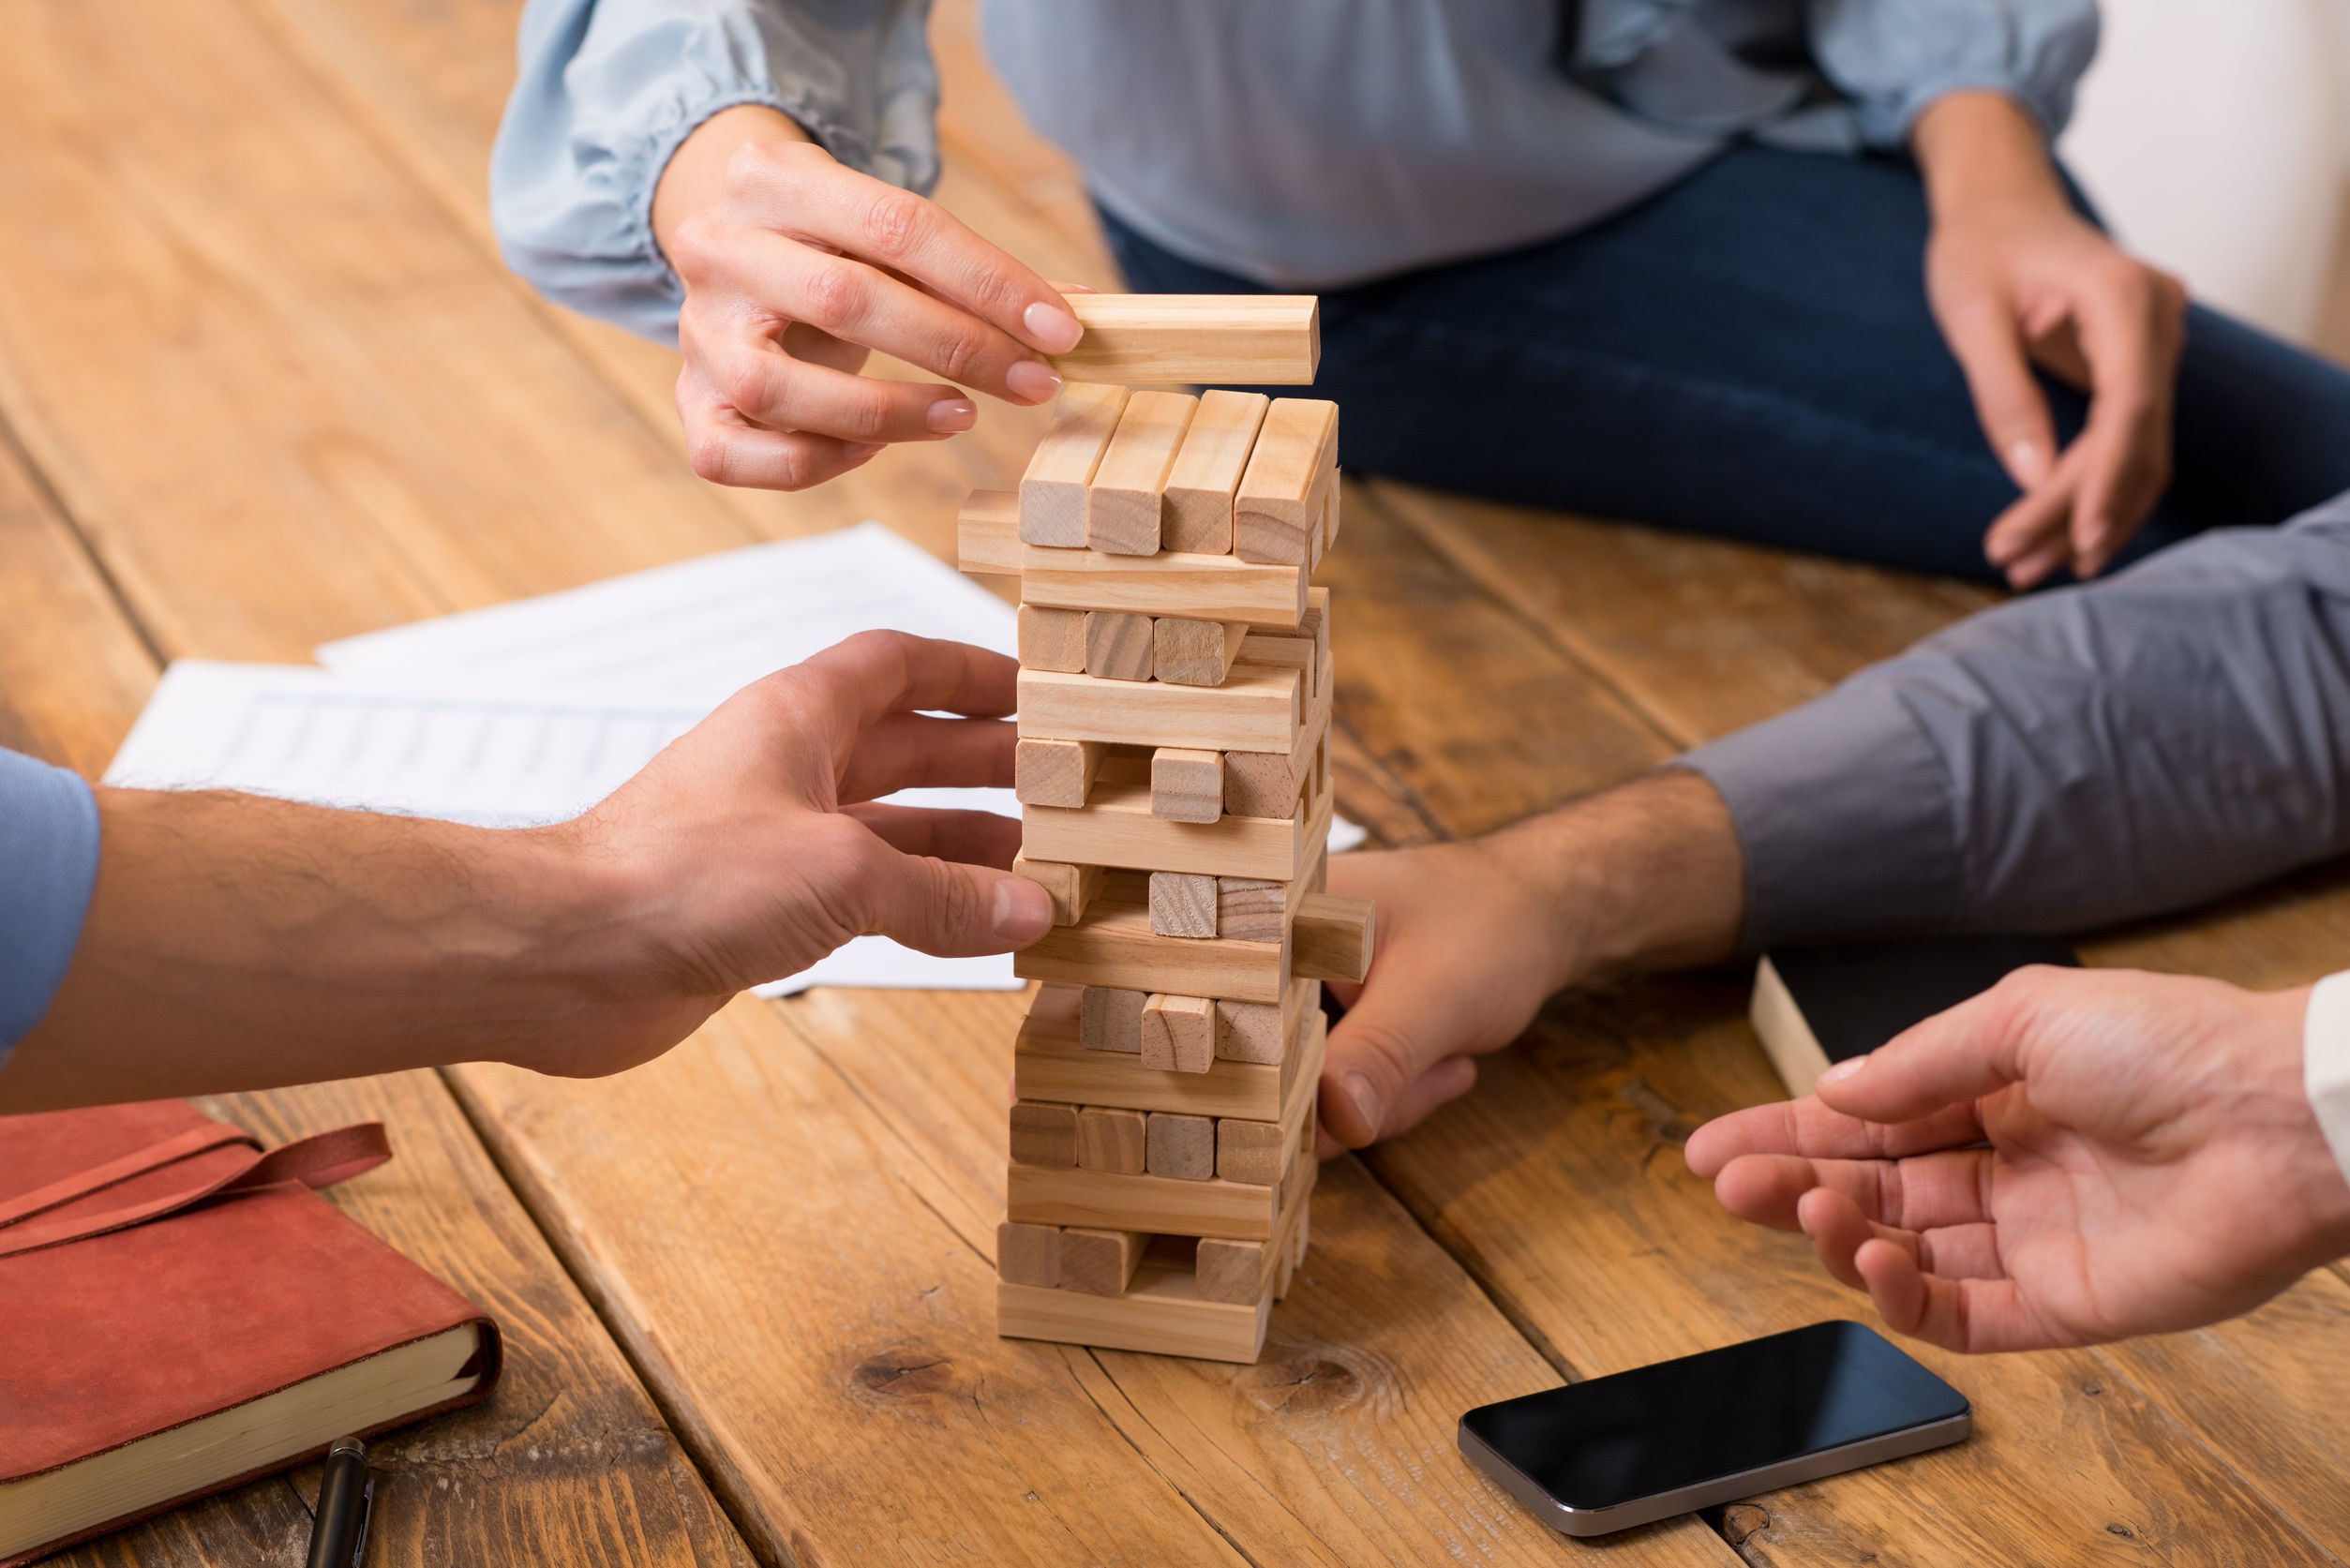 51077703 - close up of hands helping build a building of wooden pieces. businesspeople planning a new business strategy. business team trying to generate new ideas with the help of playing with wooden bricks. business risk concept.